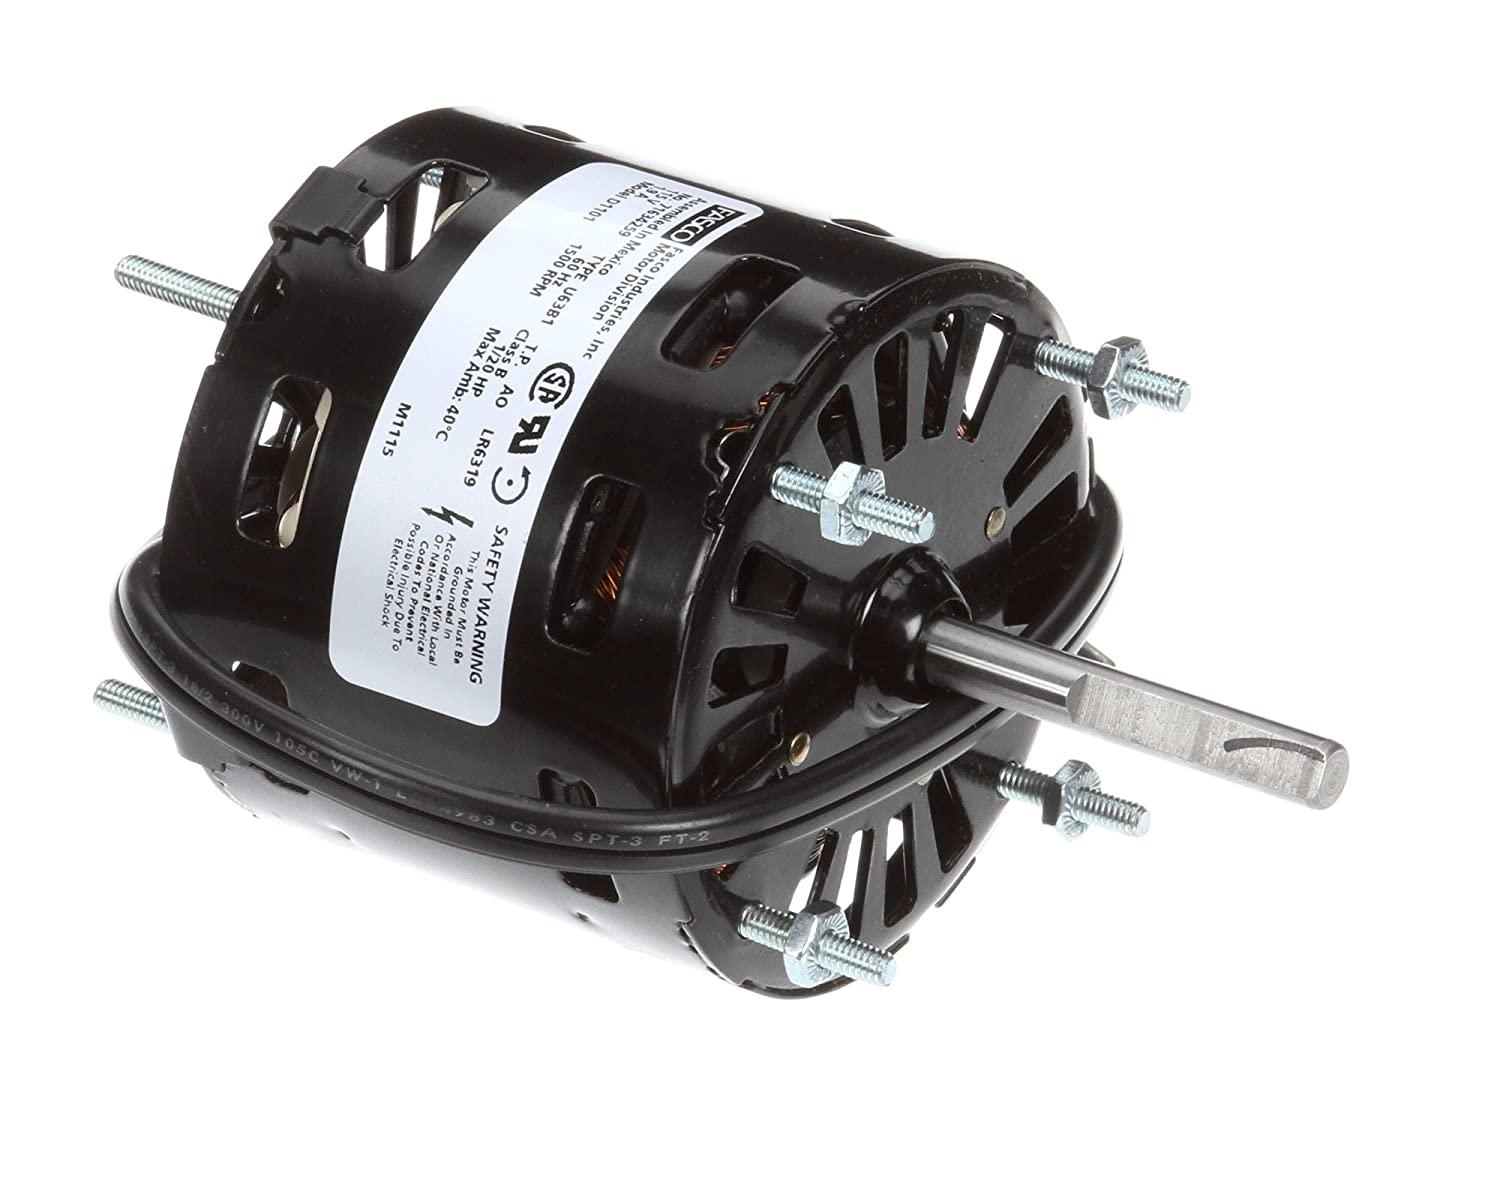 1//20Hp 1500Rpm 115V Fasco D1101 CCW Motor